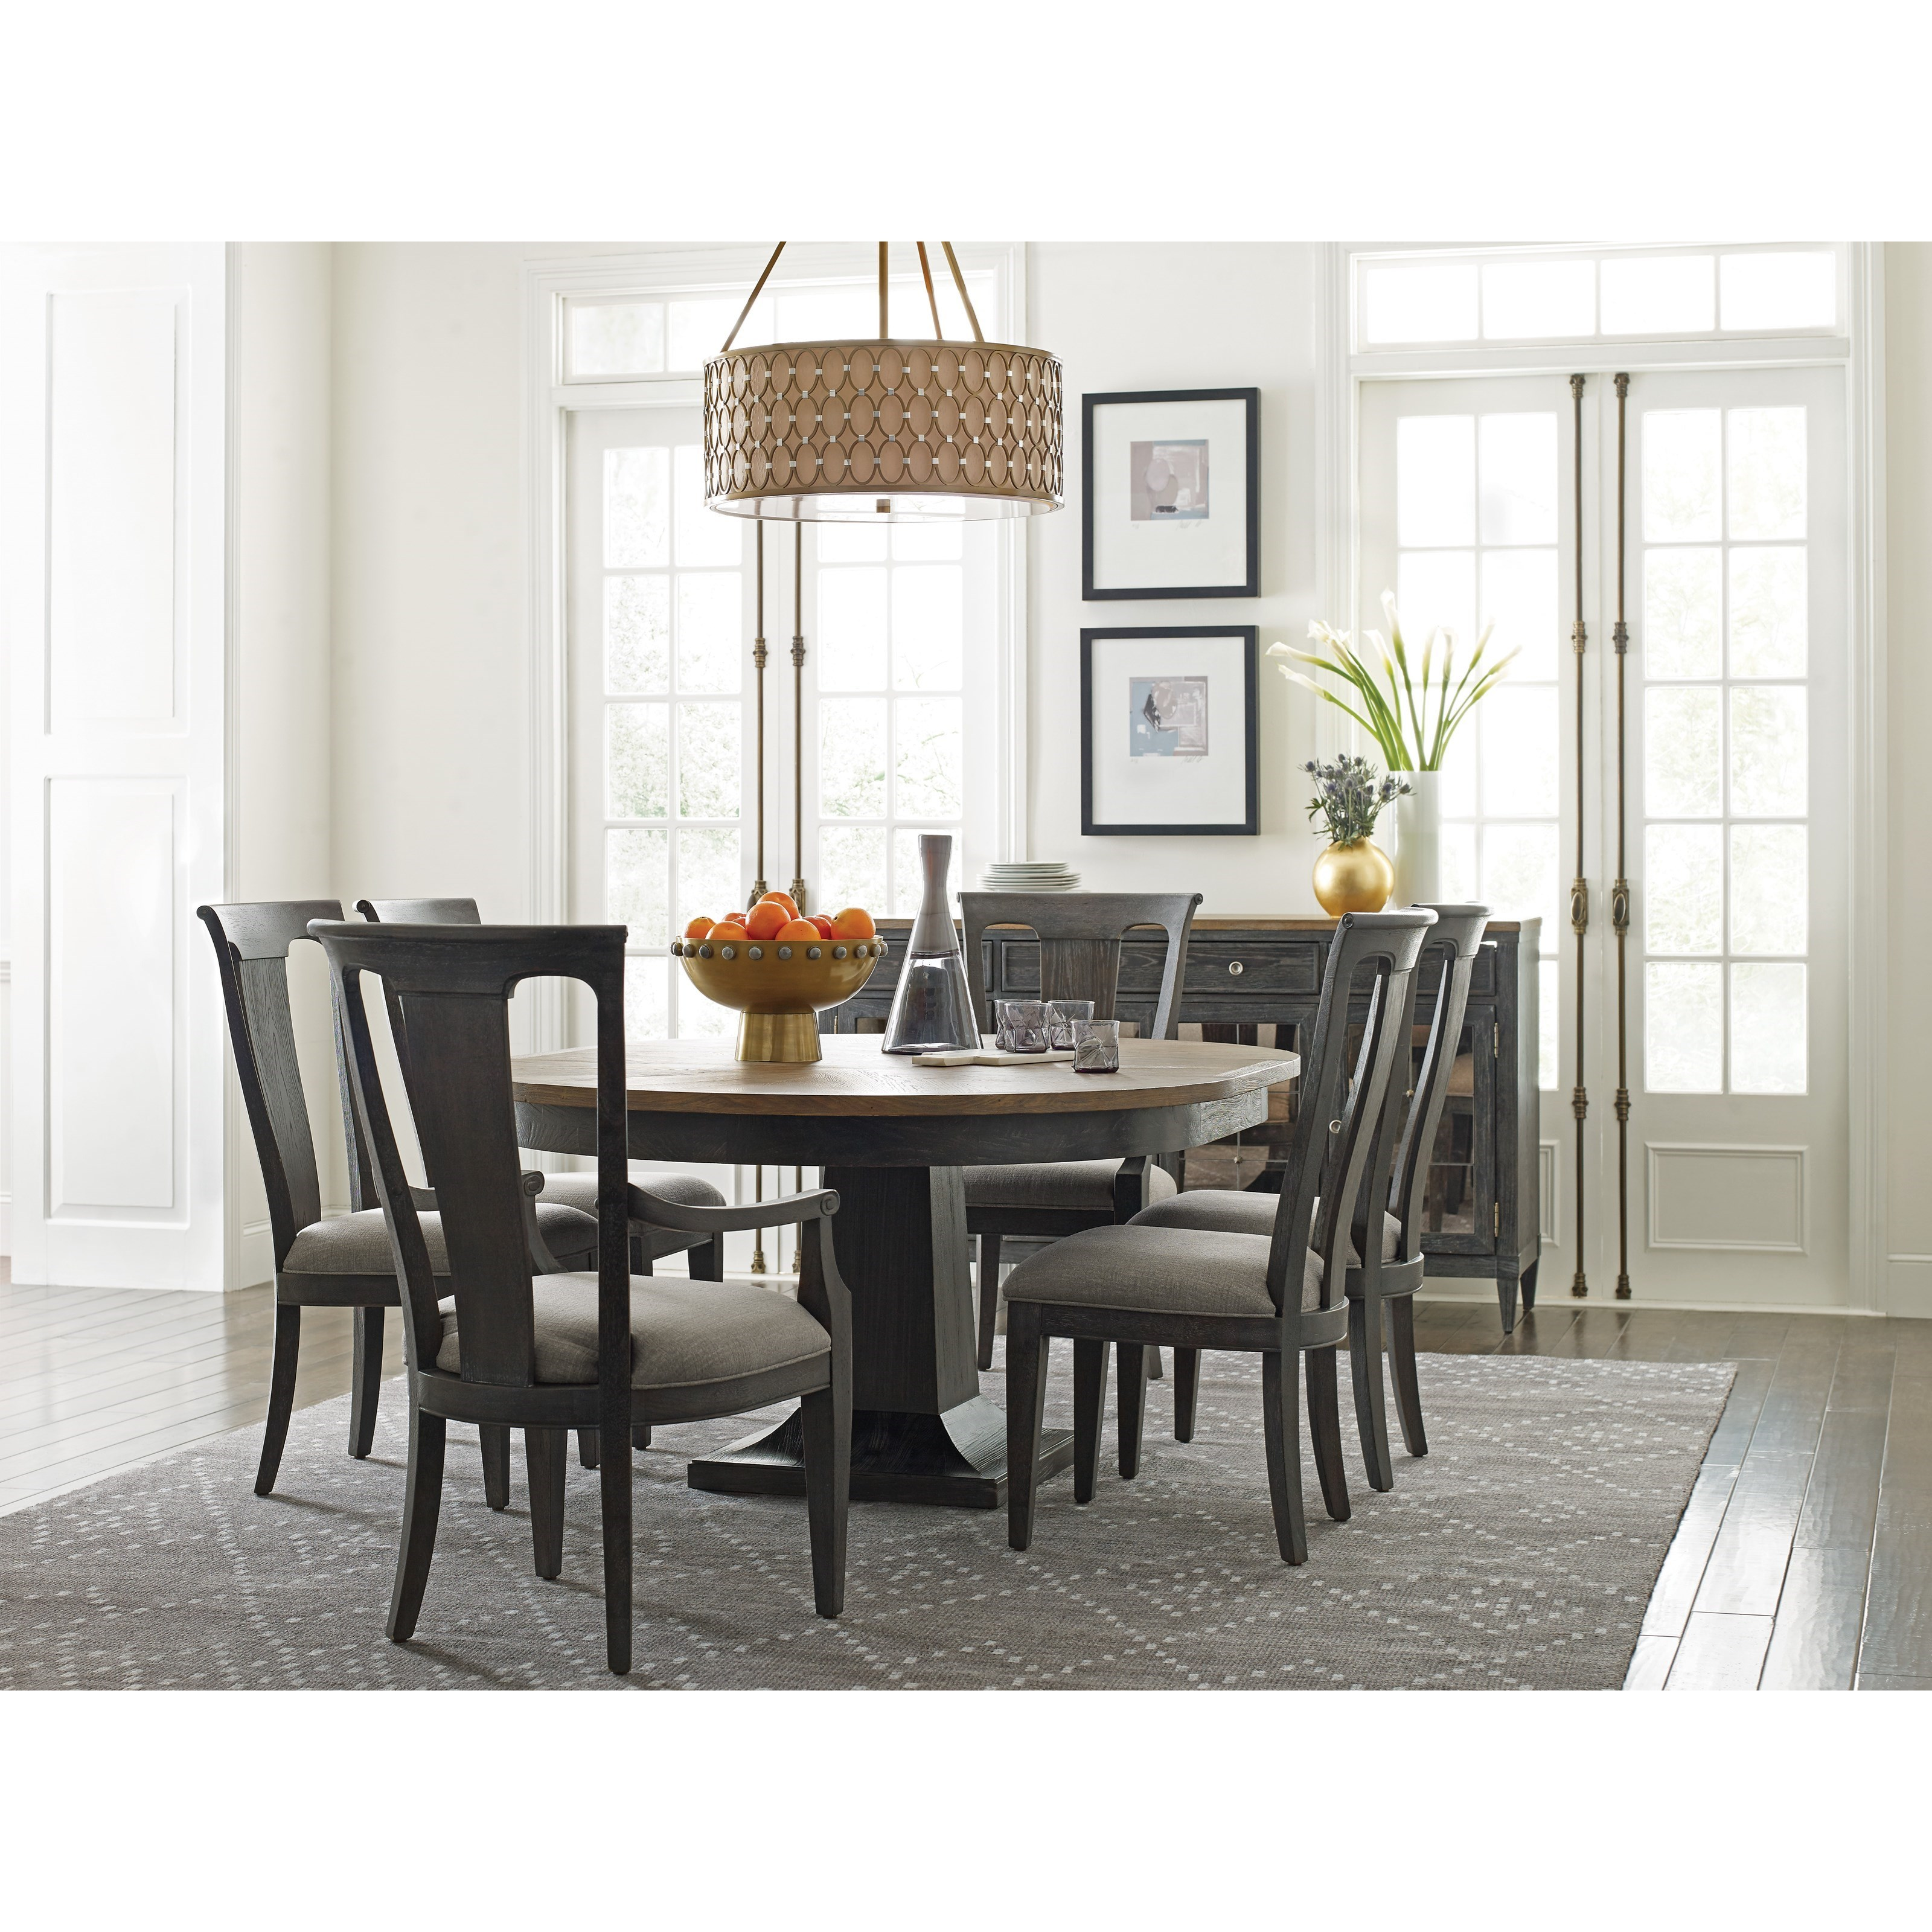 Ardennes Formal Dining Room Group by American Drew at Alison Craig Home Furnishings